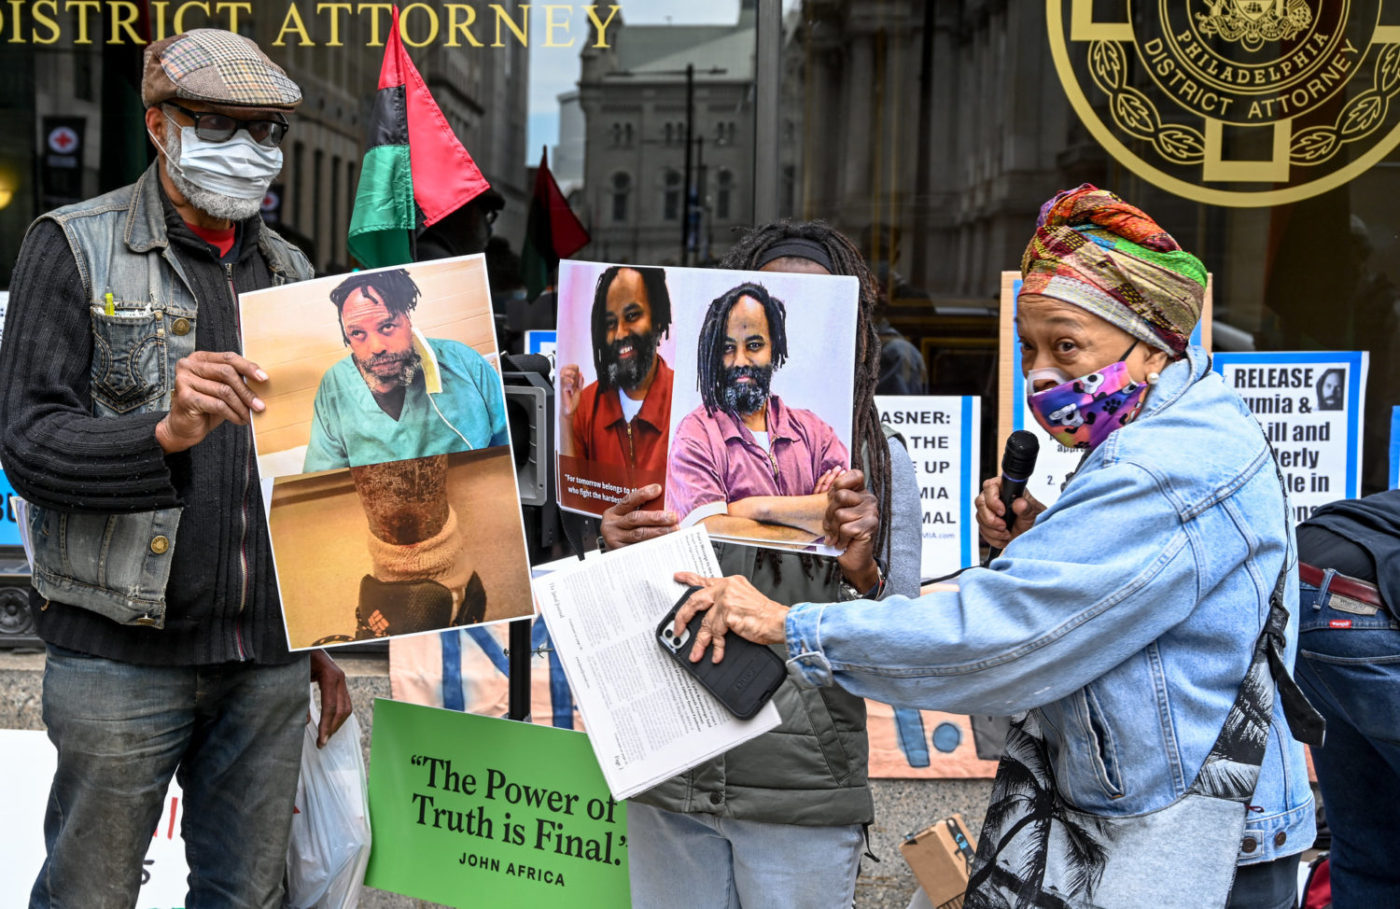 Pam-Africa-displays-Mumia-then-now-pics-outside-DA-Krasners-office-031221-1400x909, Mumia update: The new Krasner brief, Behind Enemy Lines